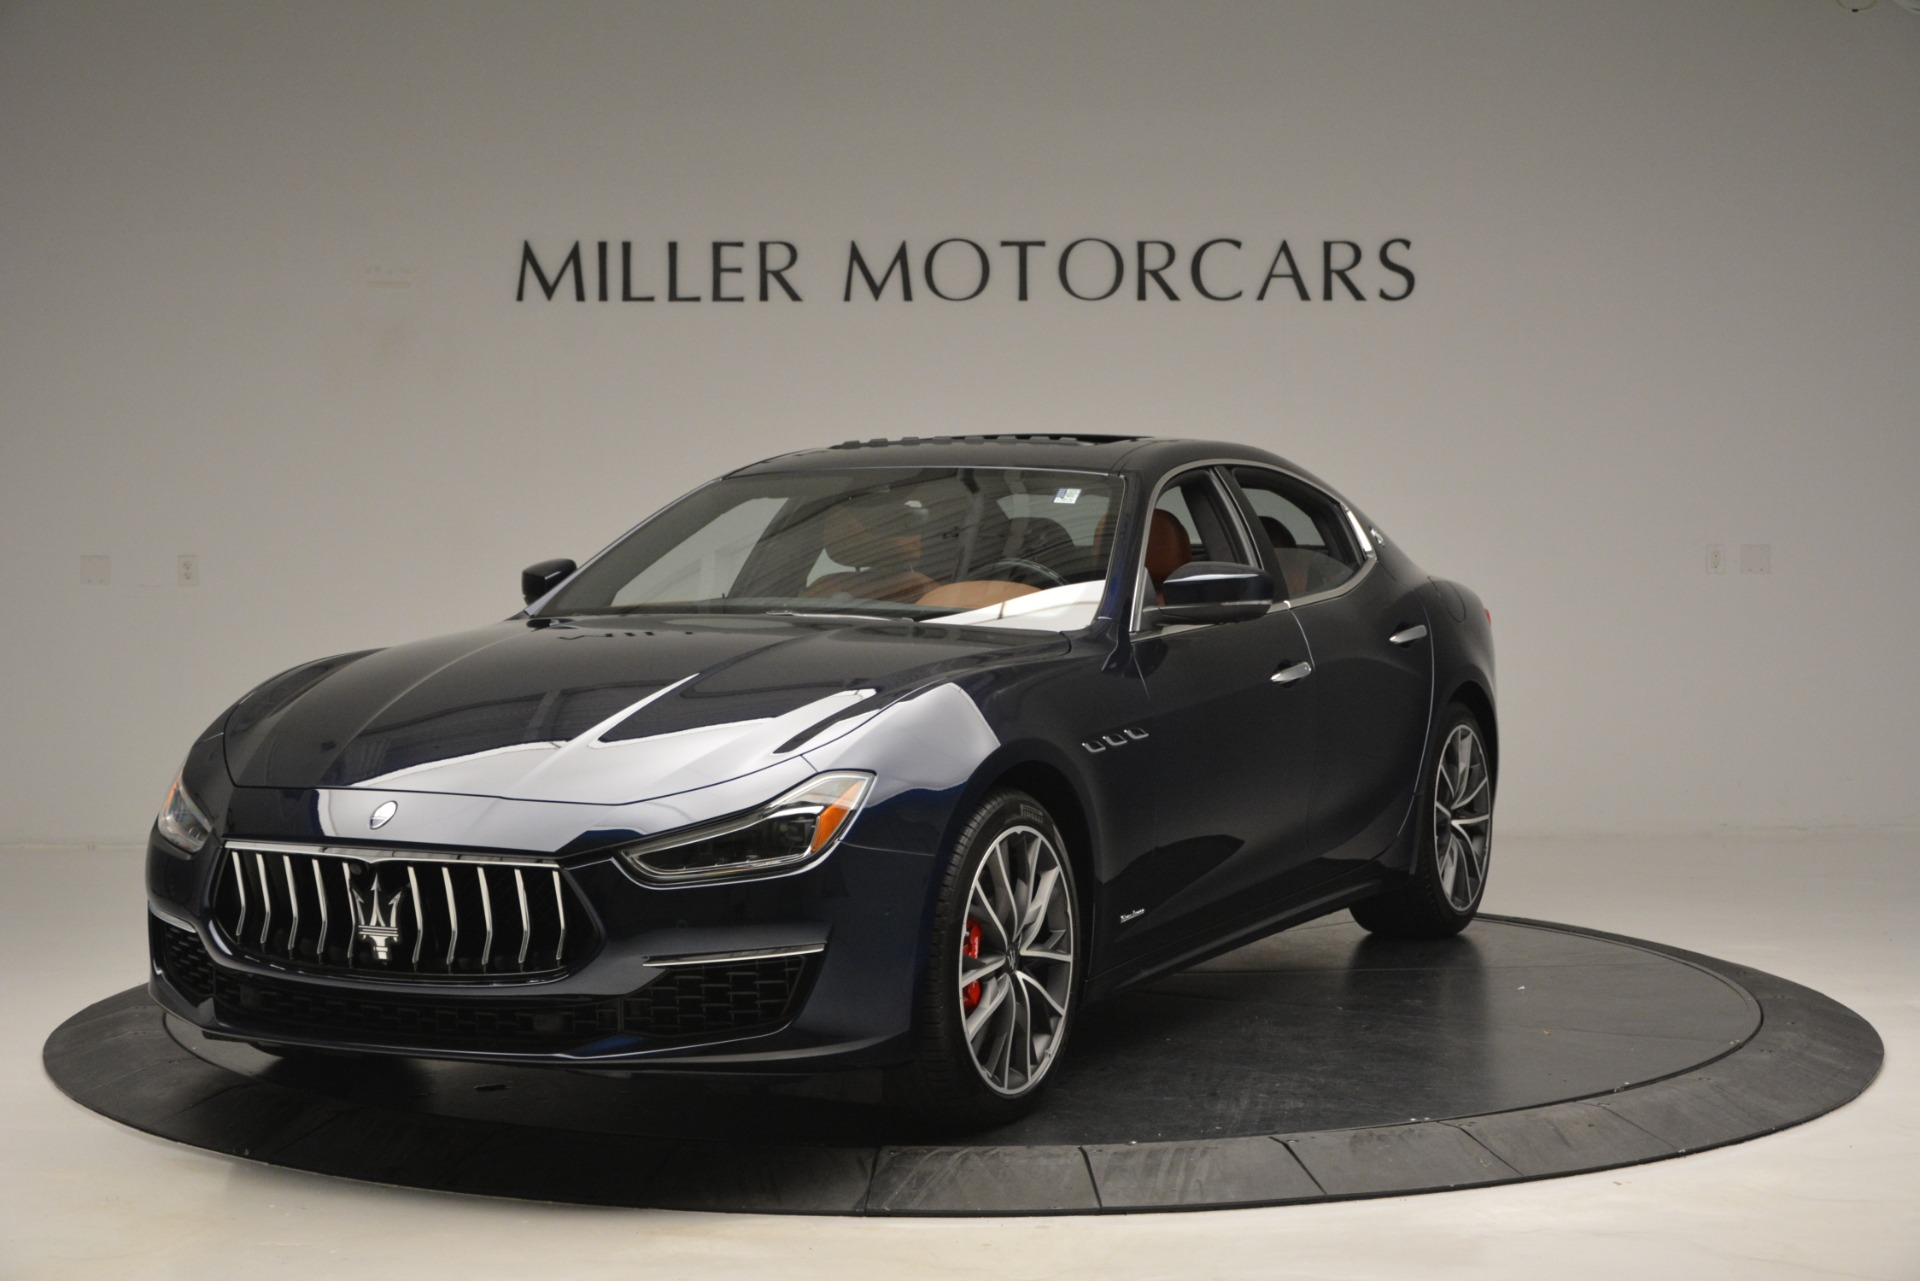 New 2019 Maserati Ghibli S Q4 GranSport For Sale In Westport, CT 2948_main